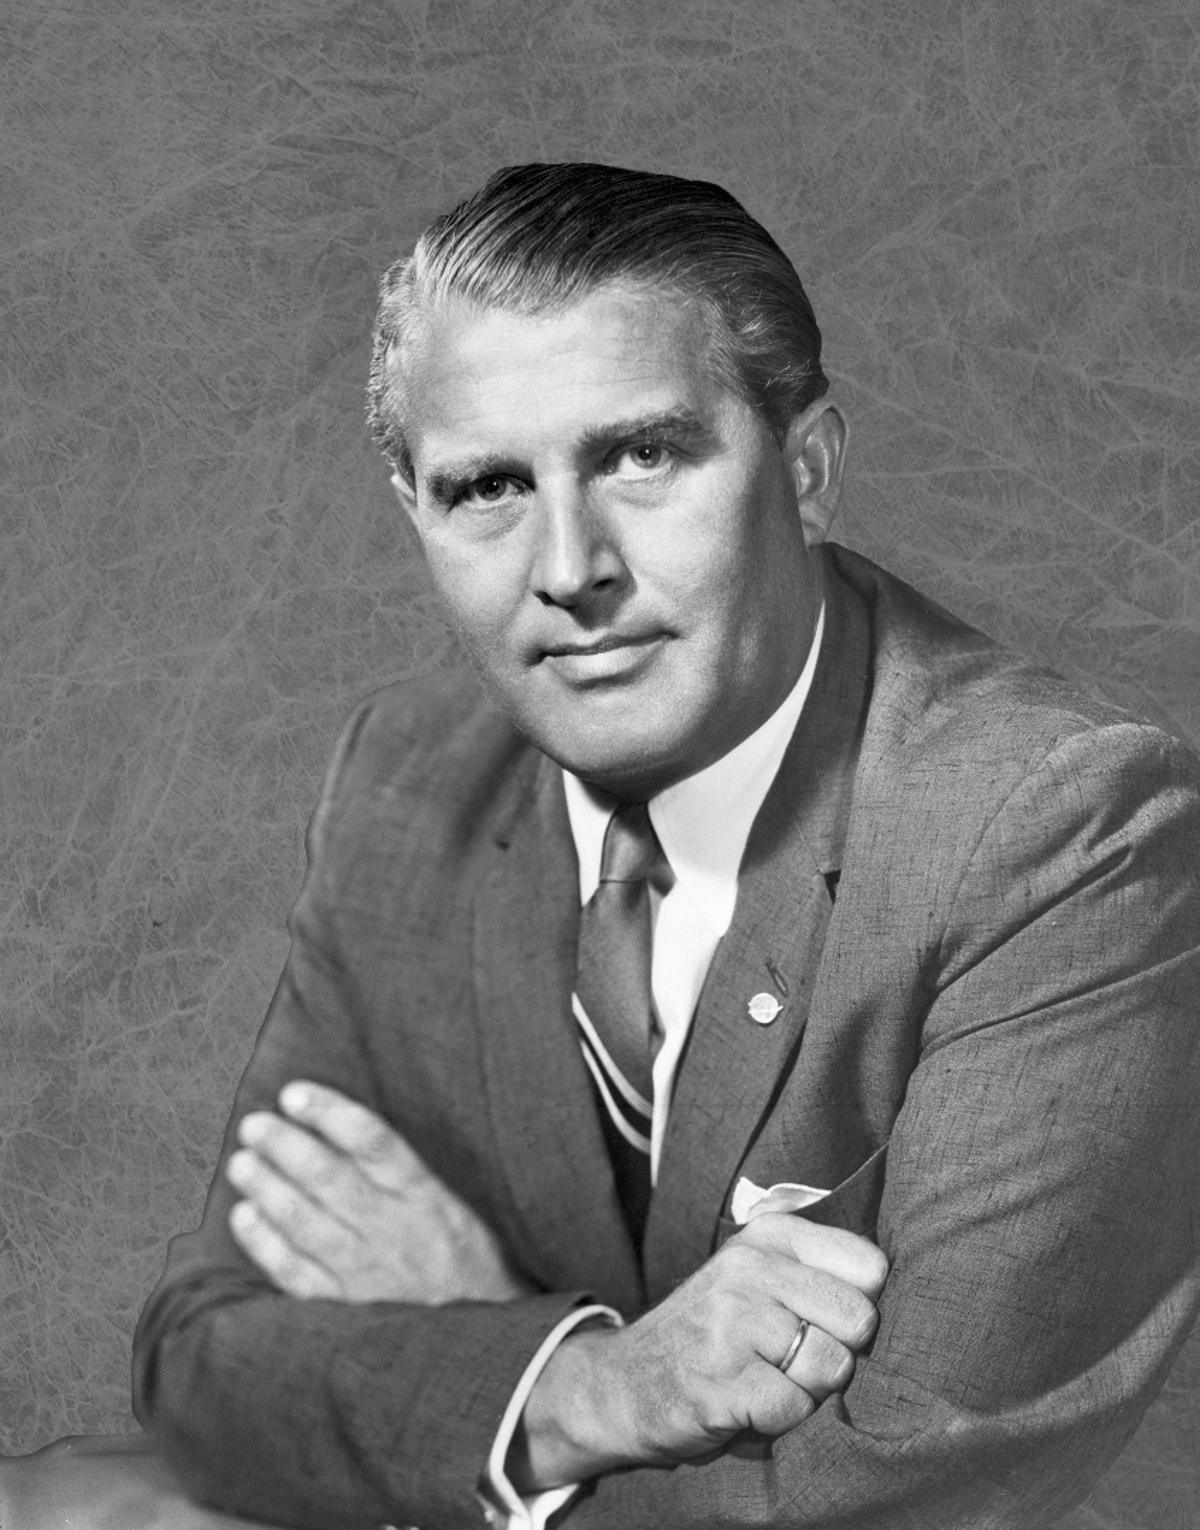 The Man Will Conquer Space Soon! auction includes signed technical sketches by rocket technology and space science pioneer Wernher von Braun